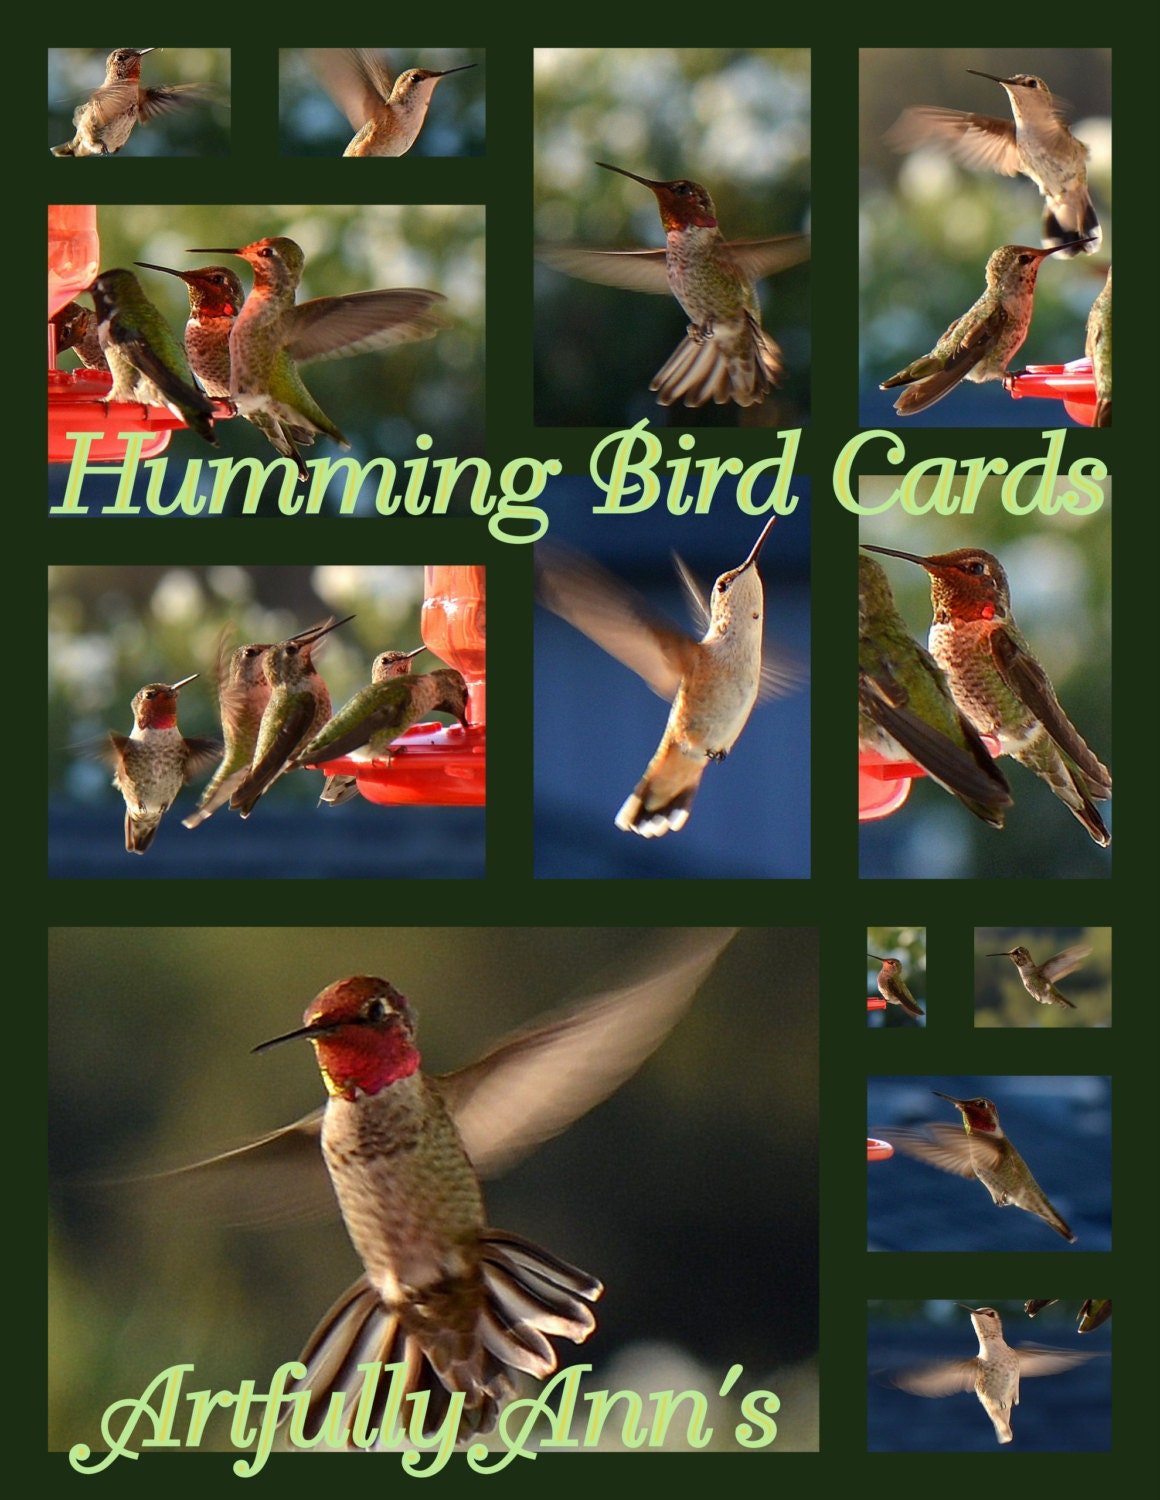 2013 Humming Bird Cards - set of 6 - The Humming Bird Collection, blank